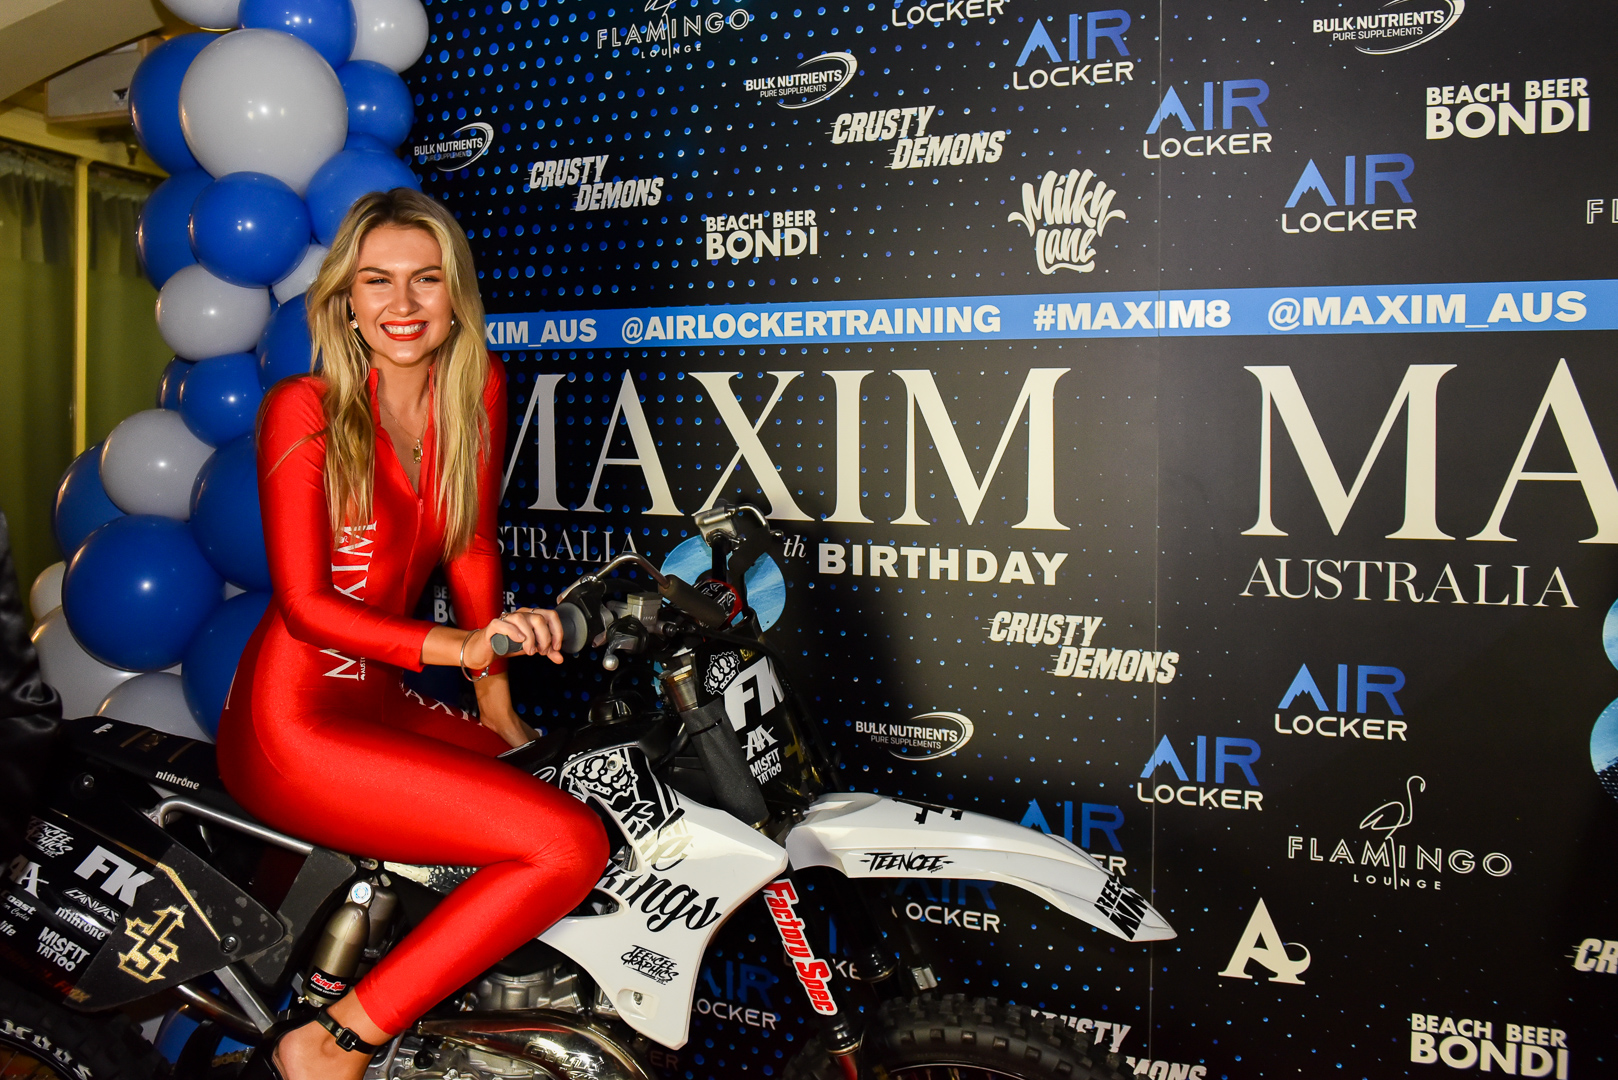 MAXIM_Australia_8th Birthday_17